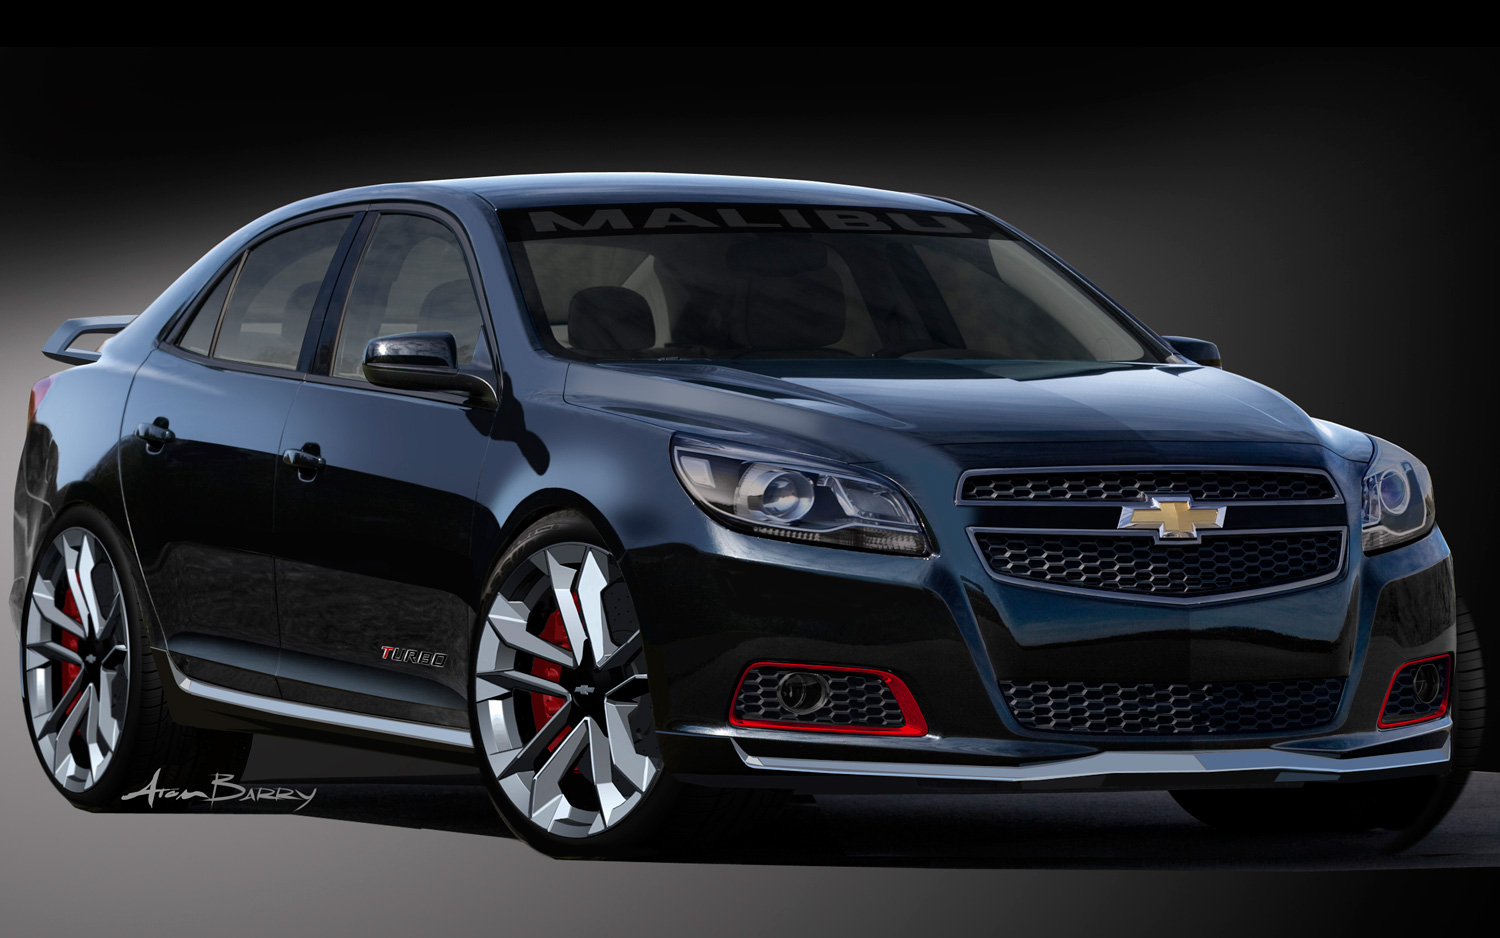 medium resolution of sema sedans 2013 chevrolet malibu turbo and 2014 chevrolet impala ready for sema